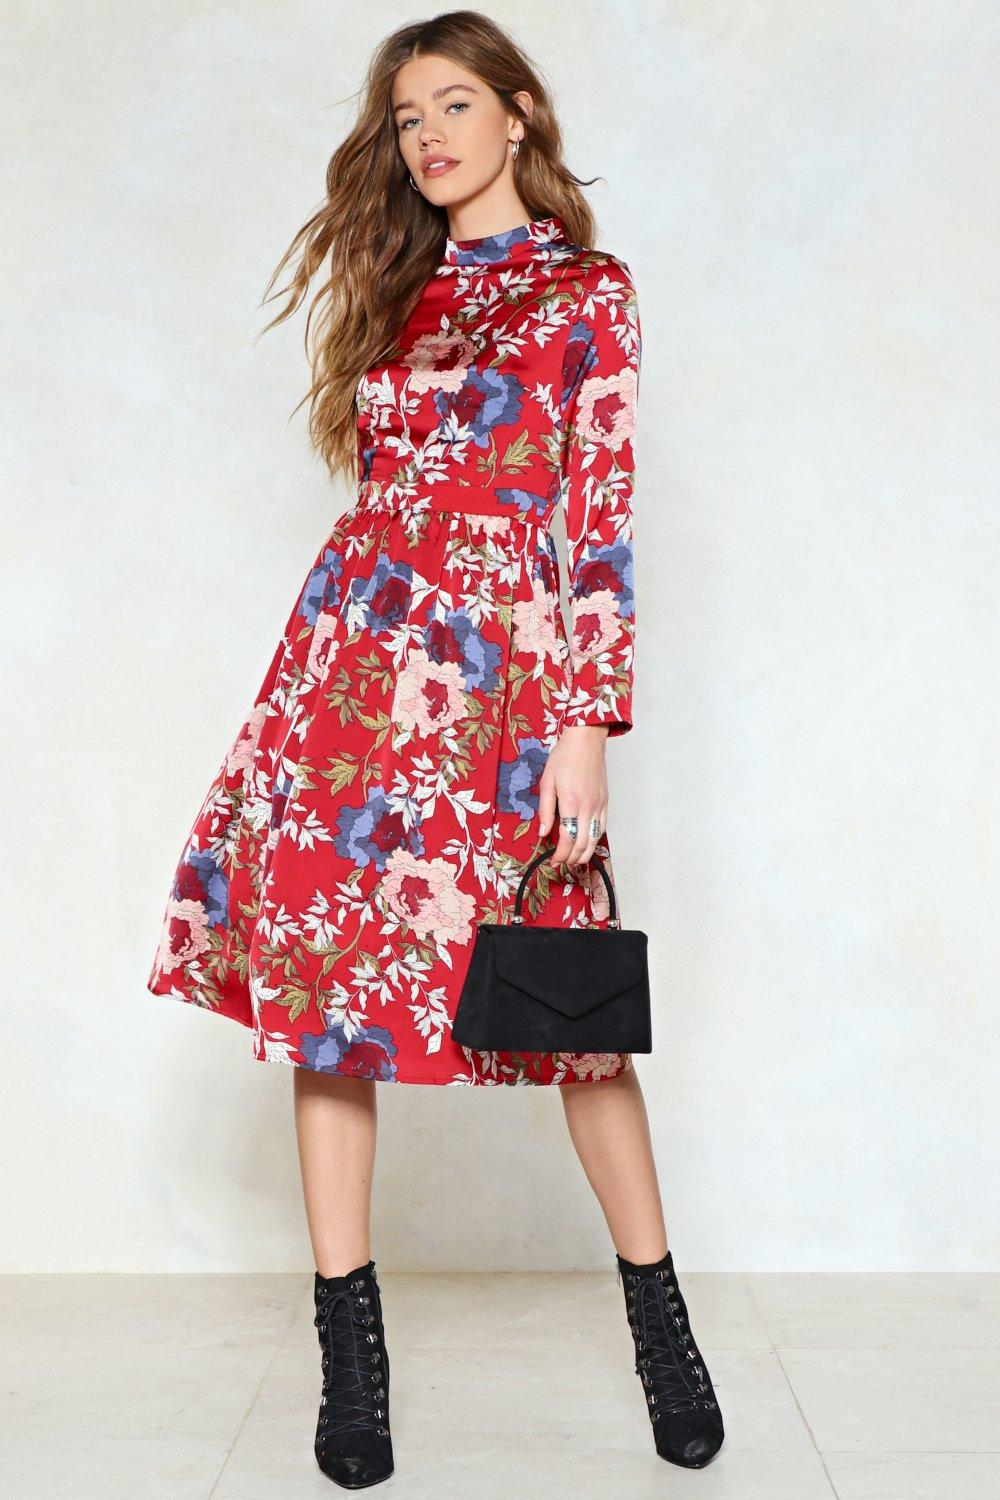 floral dress-cute outfits for school